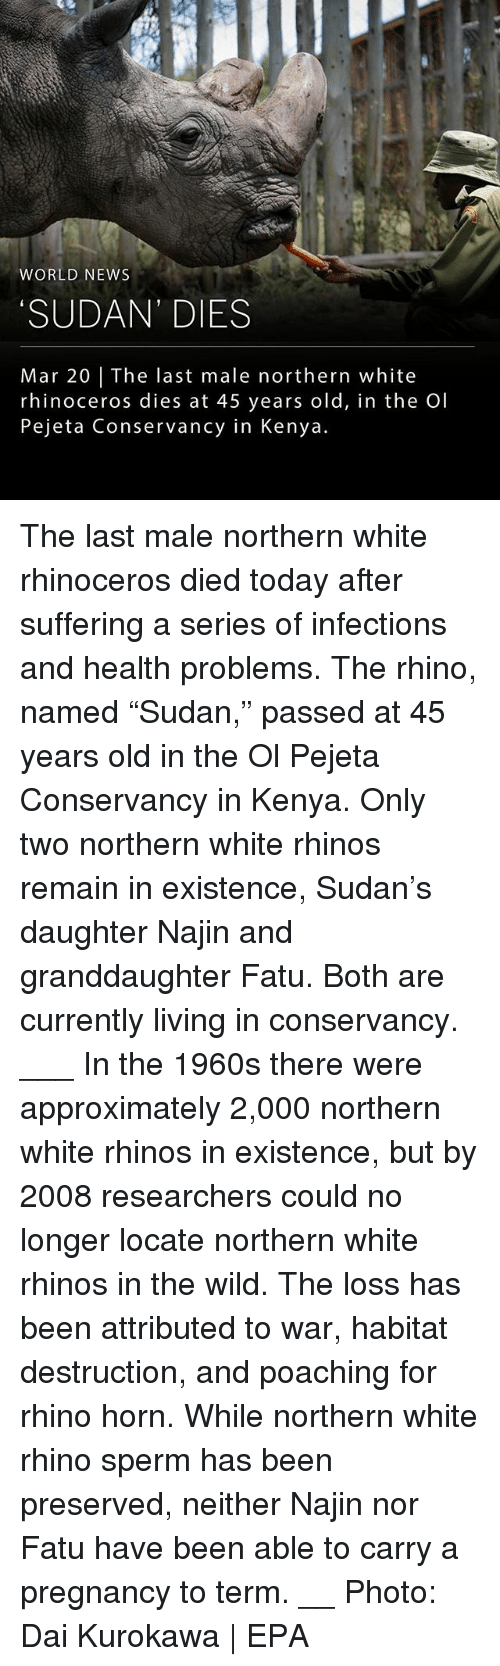 "Memes, News, and Pregnancy: WORLD NEWS  SUDAN' DIES  Mar 20 | The last male northern white  rhinoceros dies at 45 years old, in the Ol  Pejeta Conservancy in Kenya. The last male northern white rhinoceros died today after suffering a series of infections and health problems. The rhino, named ""Sudan,"" passed at 45 years old in the Ol Pejeta Conservancy in Kenya. Only two northern white rhinos remain in existence, Sudan's daughter Najin and granddaughter Fatu. Both are currently living in conservancy. ___ In the 1960s there were approximately 2,000 northern white rhinos in existence, but by 2008 researchers could no longer locate northern white rhinos in the wild. The loss has been attributed to war, habitat destruction, and poaching for rhino horn. While northern white rhino sperm has been preserved, neither Najin nor Fatu have been able to carry a pregnancy to term. __ Photo: Dai Kurokawa 